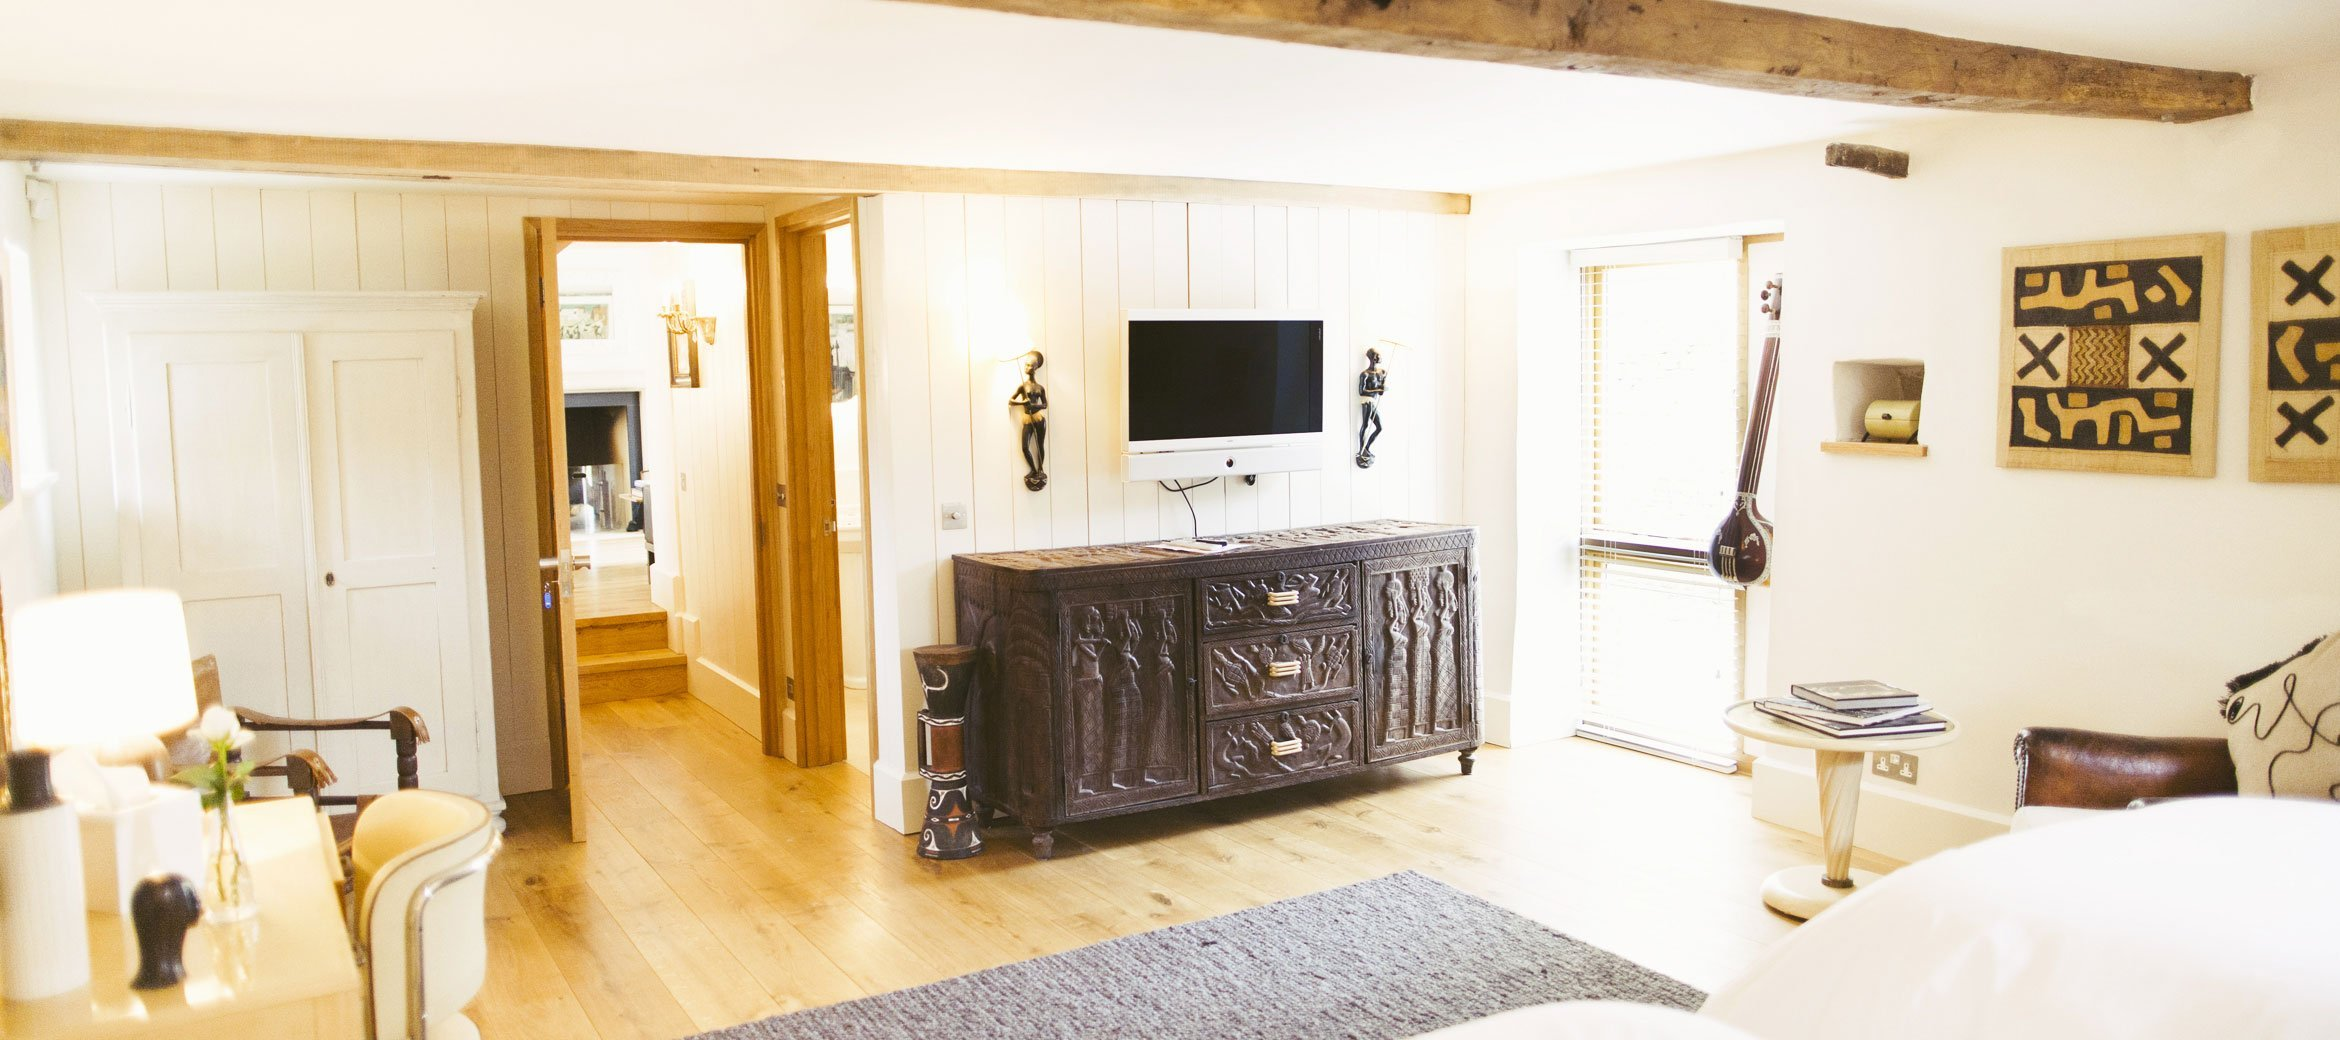 Temple-Guiting-Barn-Ground-Floor-Ensuite-Bedroom